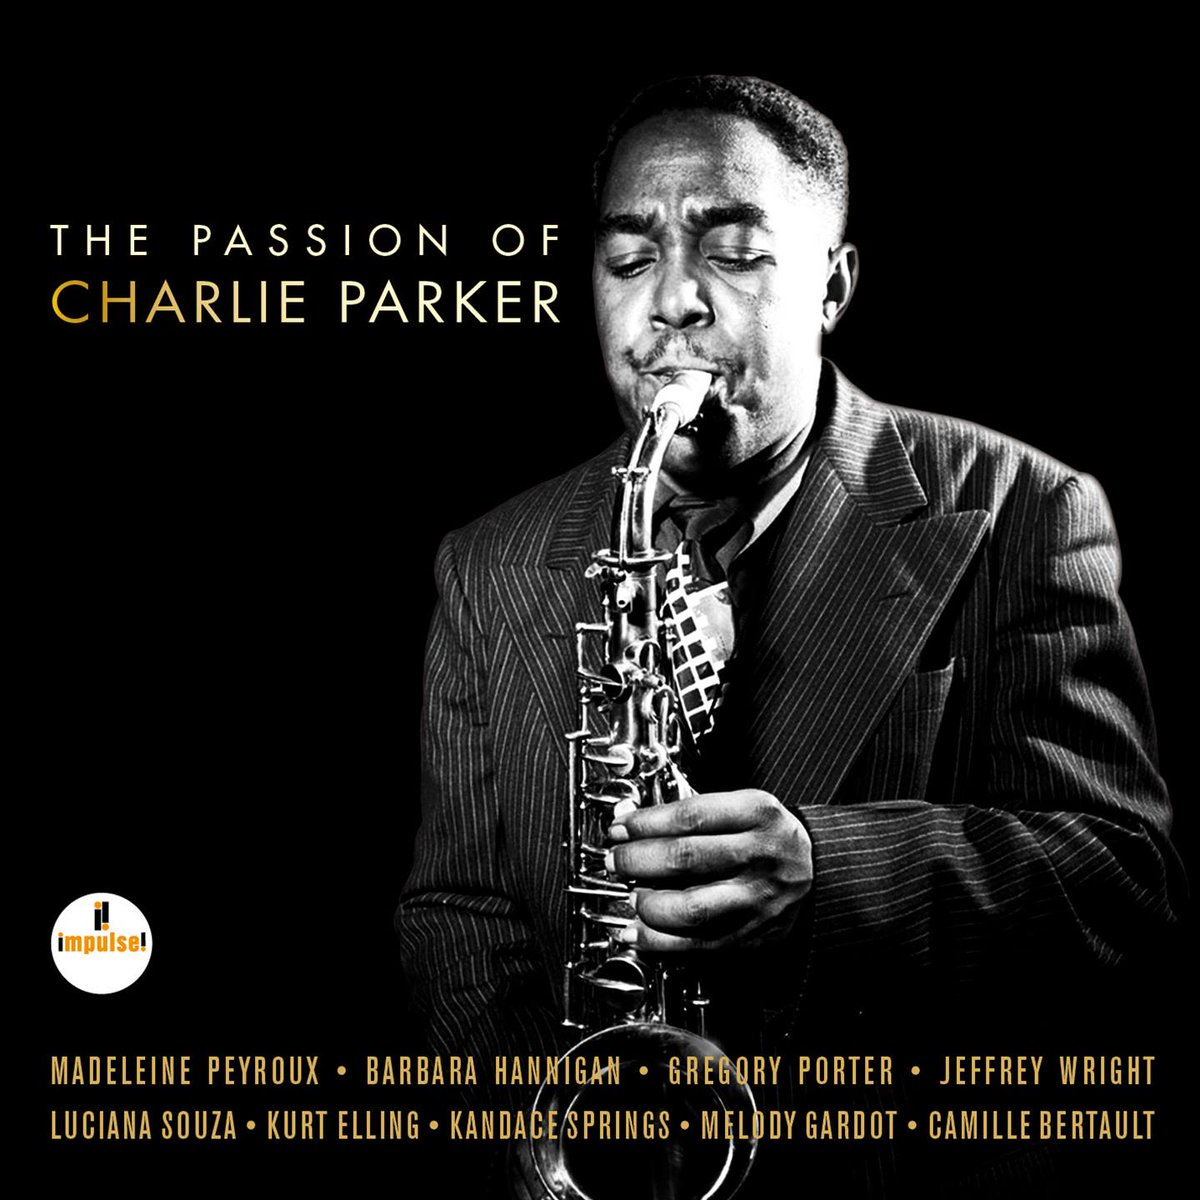 REVIEW: Various artists - The Passion of Charlie Parker